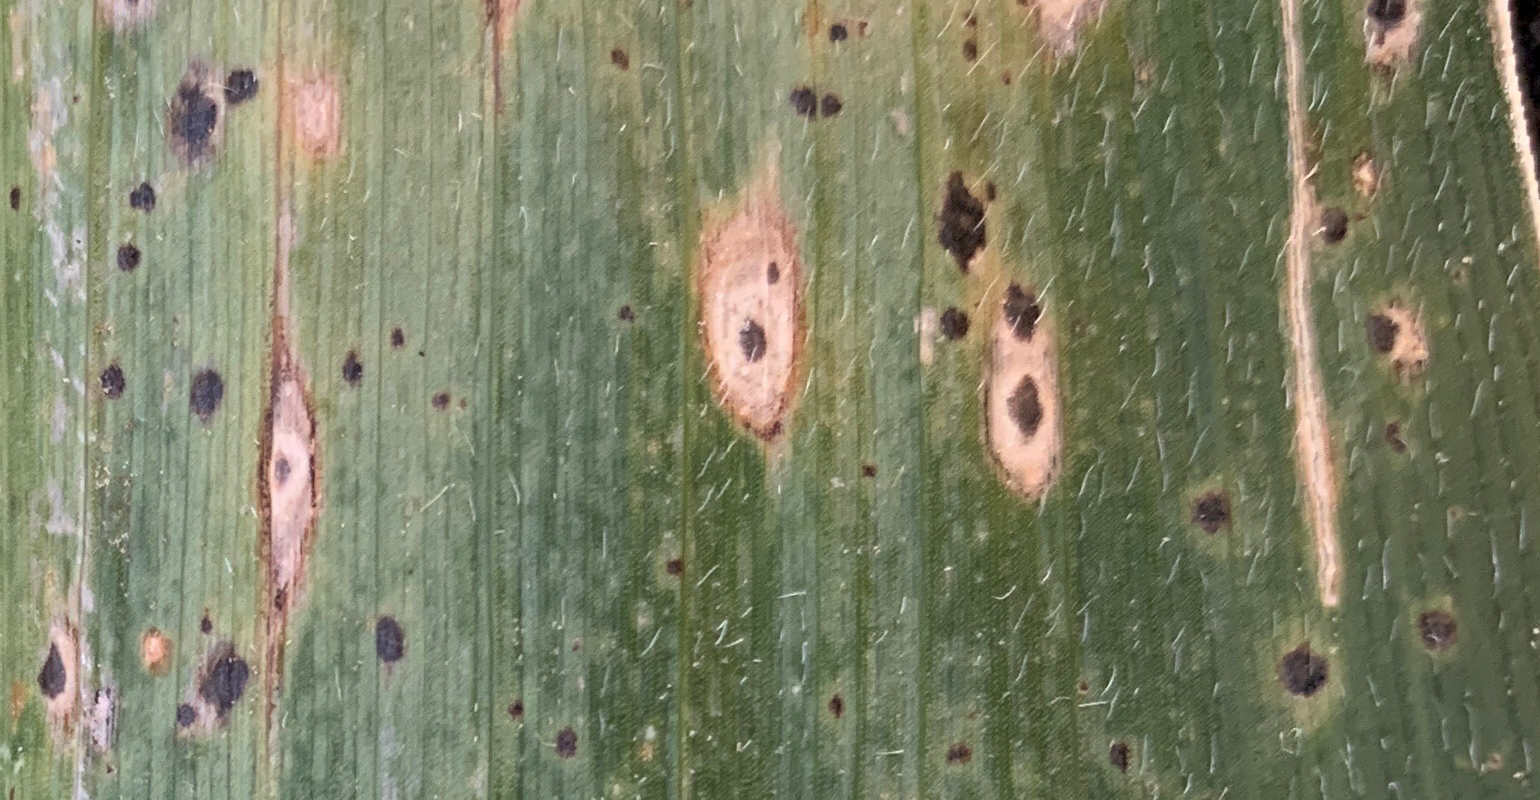 tan to brown lesions with dark borders  around the tar spots onplant